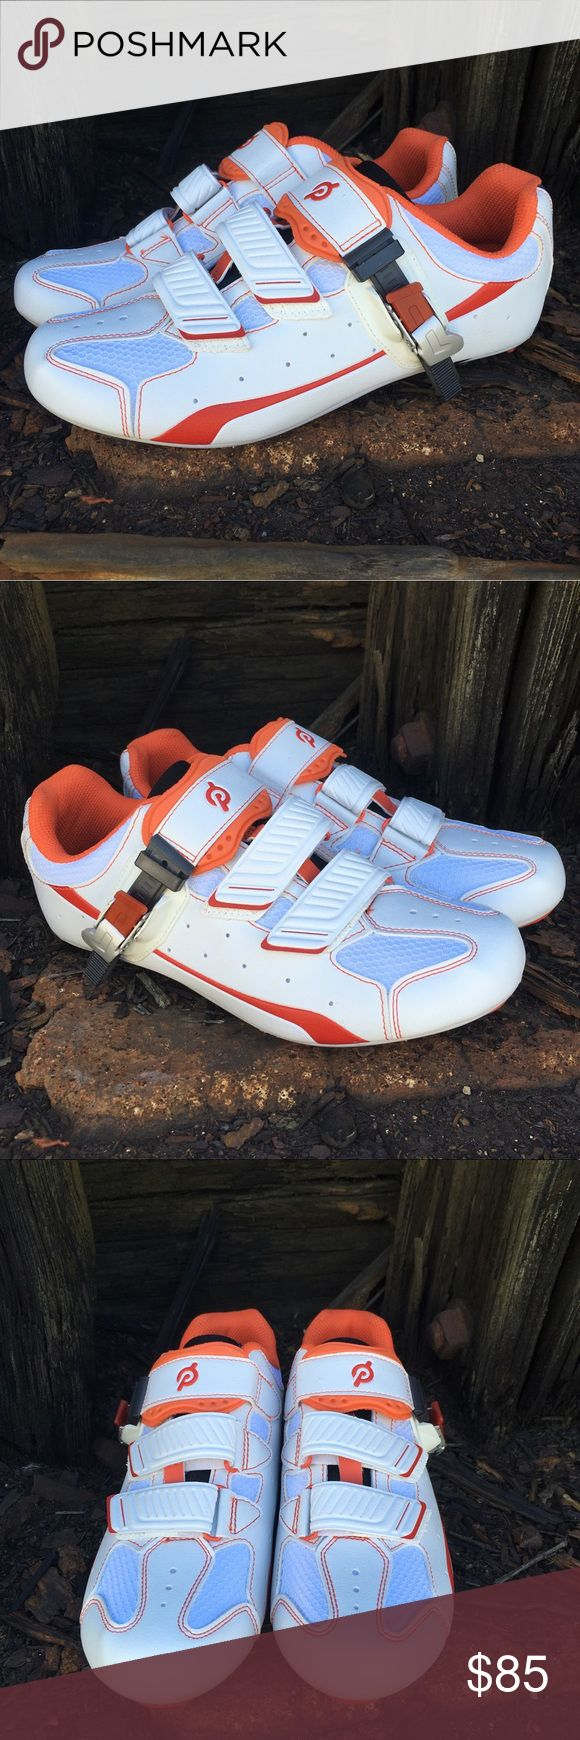 Peloton cycling spinning shoes plus new cleats Near perfect. Practically new  Trusted Peloton quality  Smoke and pet free storage   Happy to answer any questions   Thanks for looking Peloton Shoes Athletic Shoes